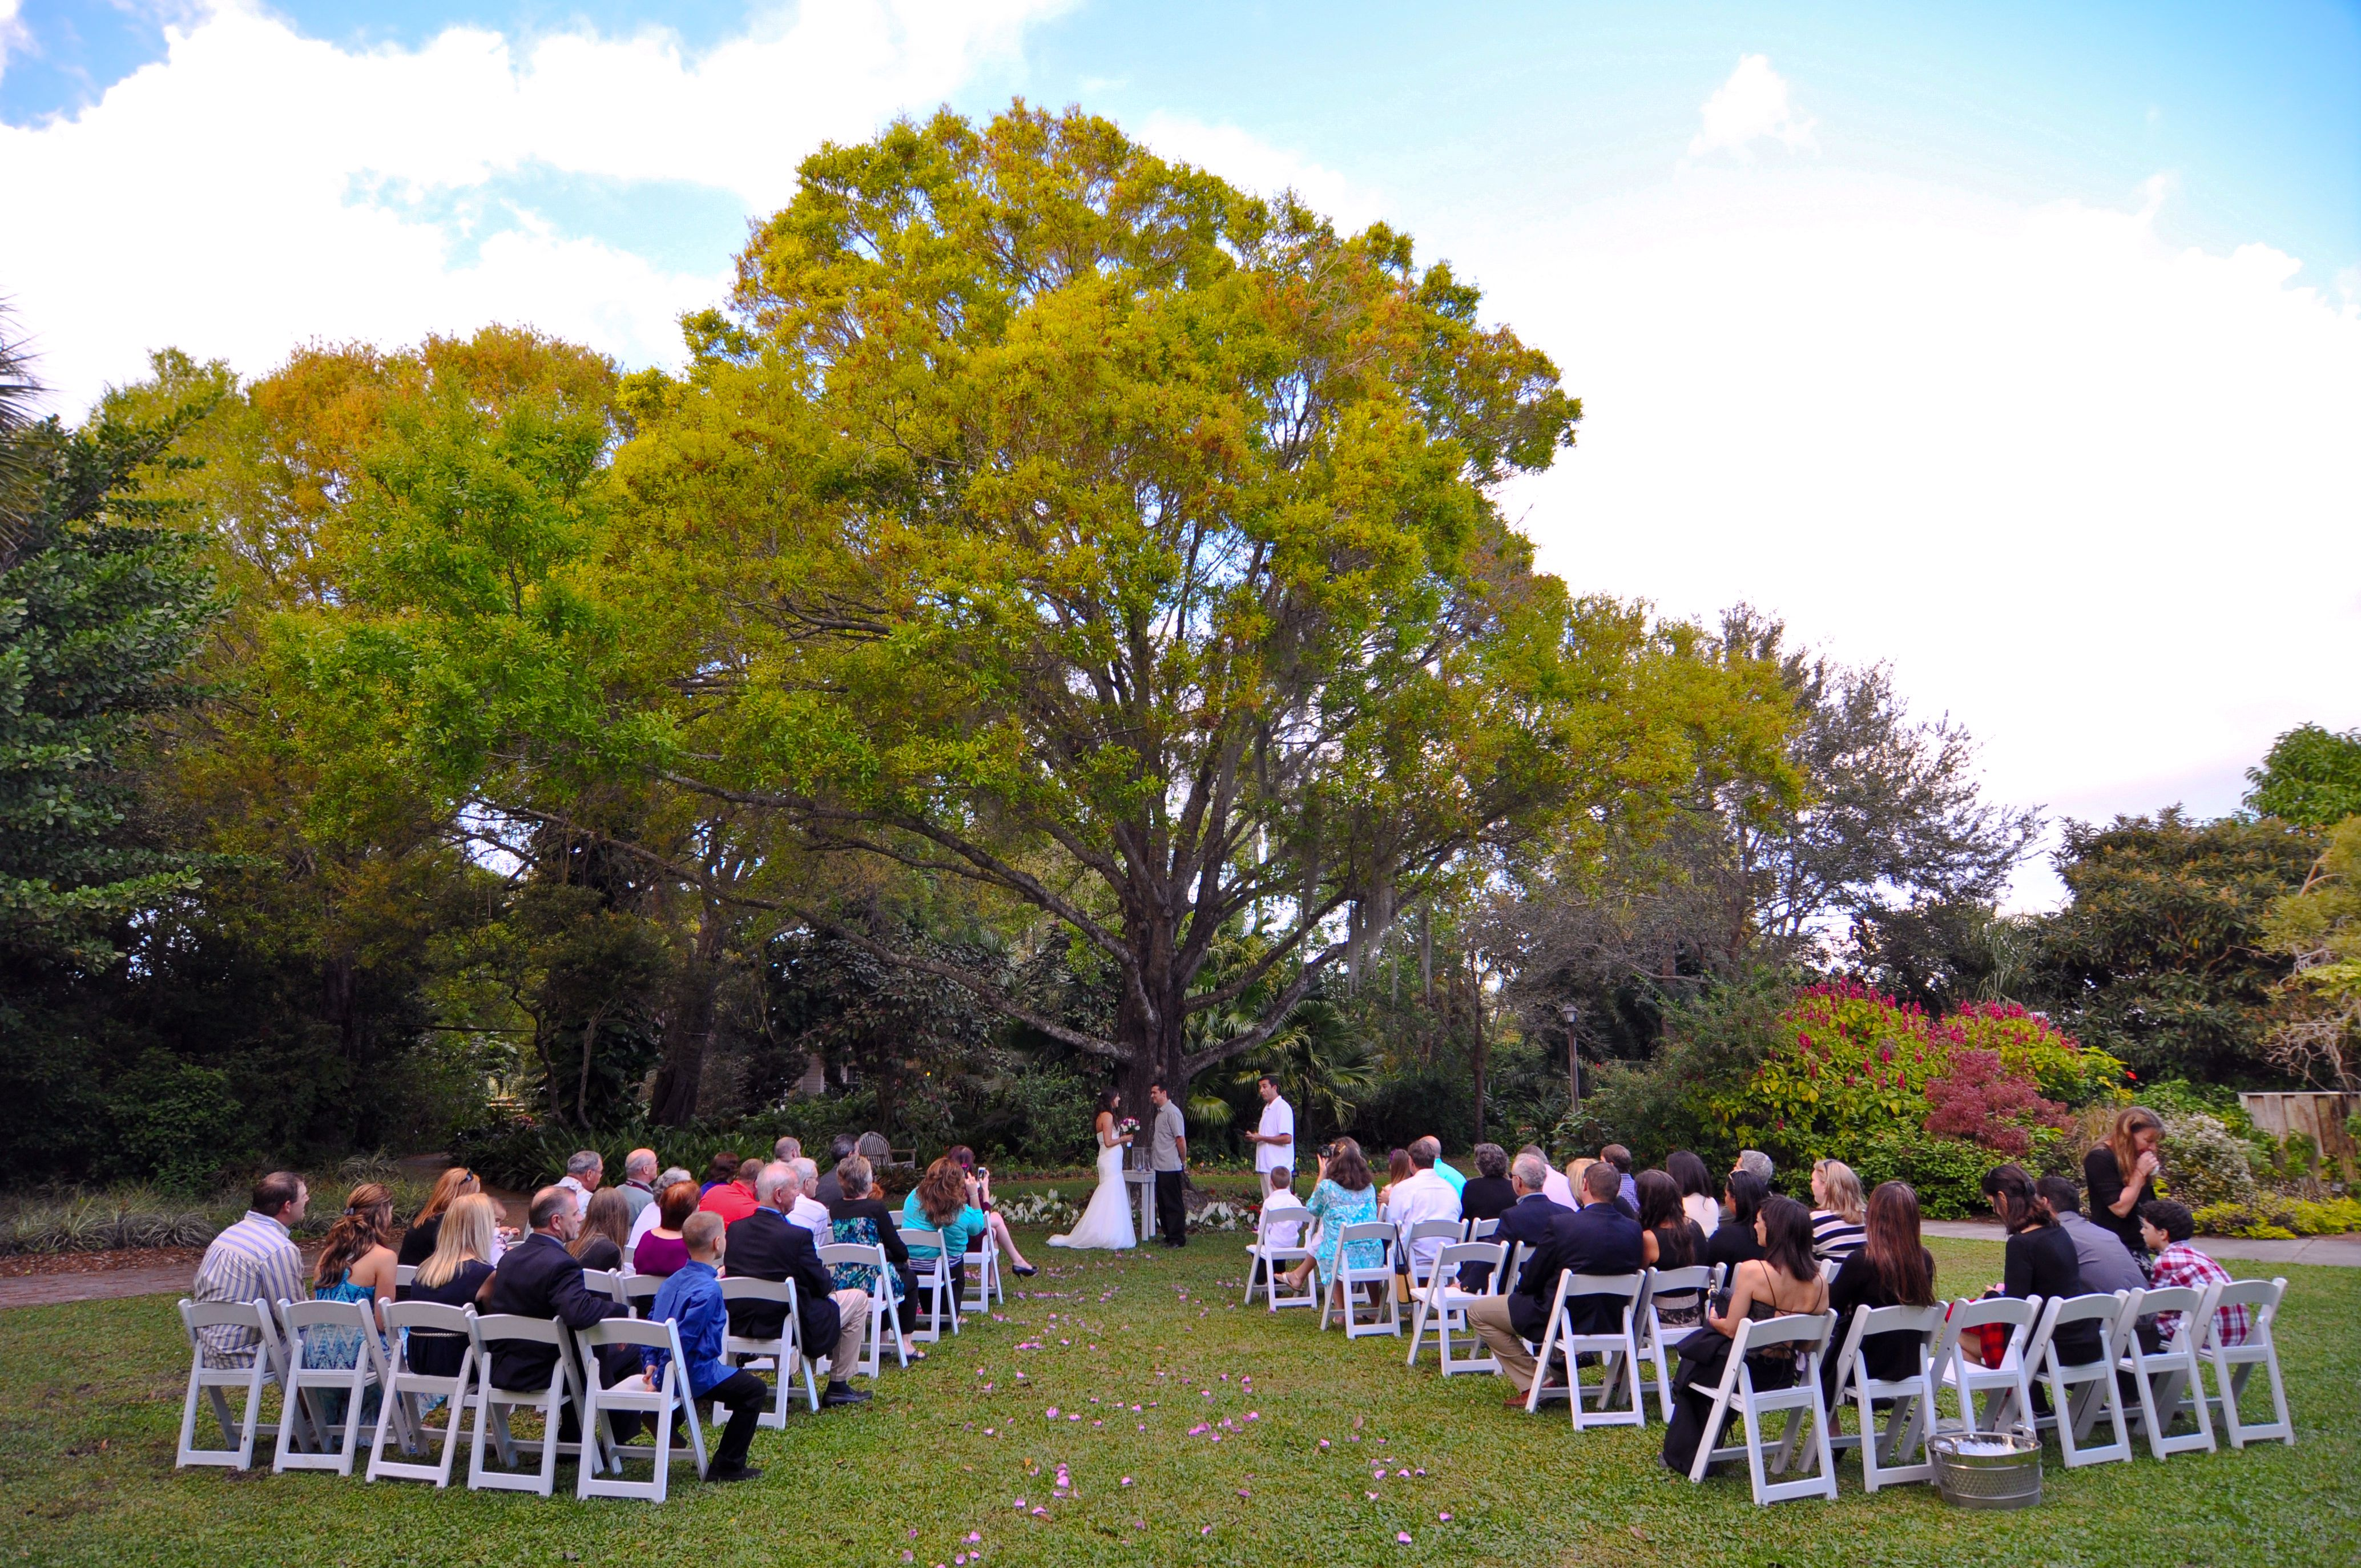 Kyrsti And Shawn 39 S Lovely Garden Wedding At The Beautiful Heathcote Botanical Gardens In Ft